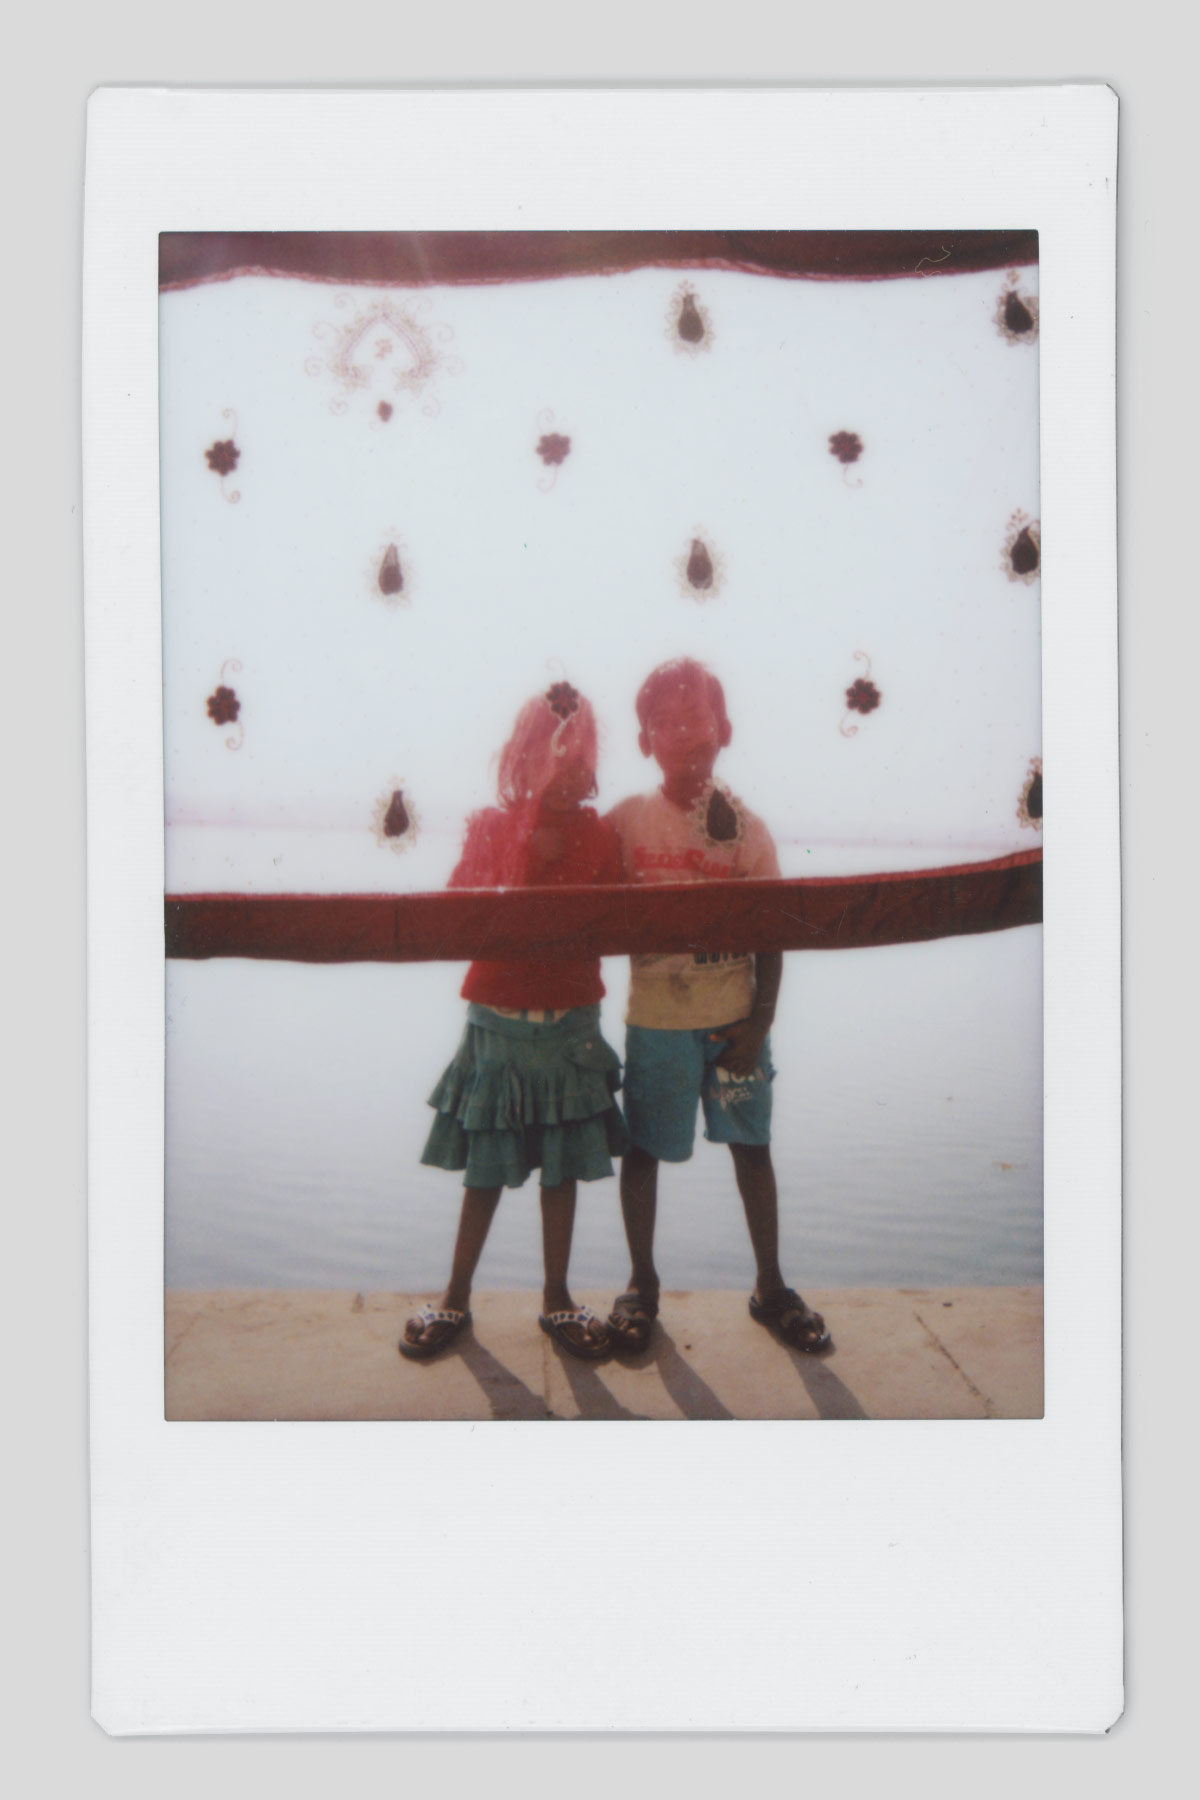 giulio_favotto_india_details_polaroid_instax_12